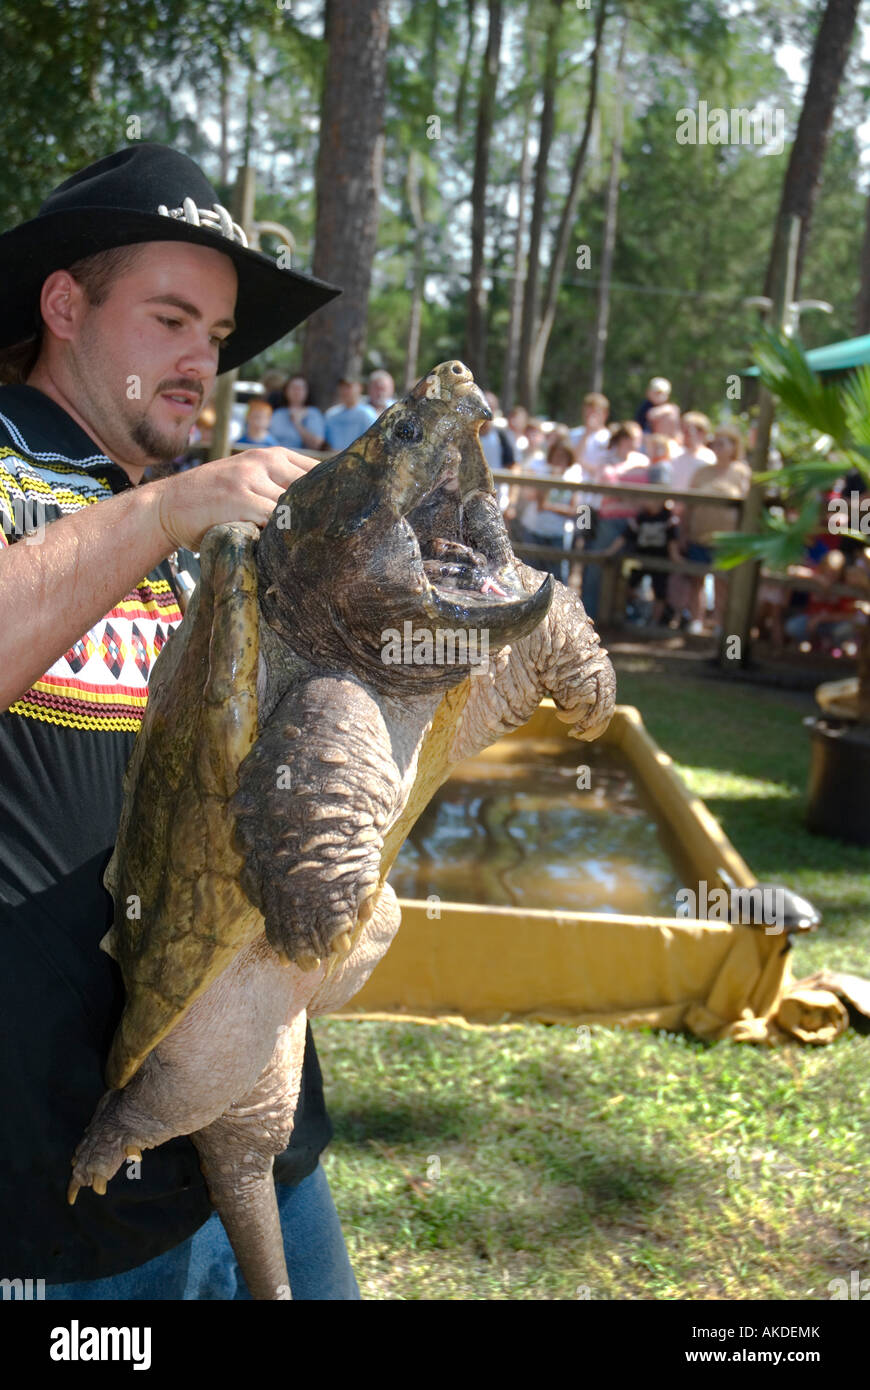 man showing alligator snapping turtle to audience during show at Alligator Fest Lake City Florida - Stock Image